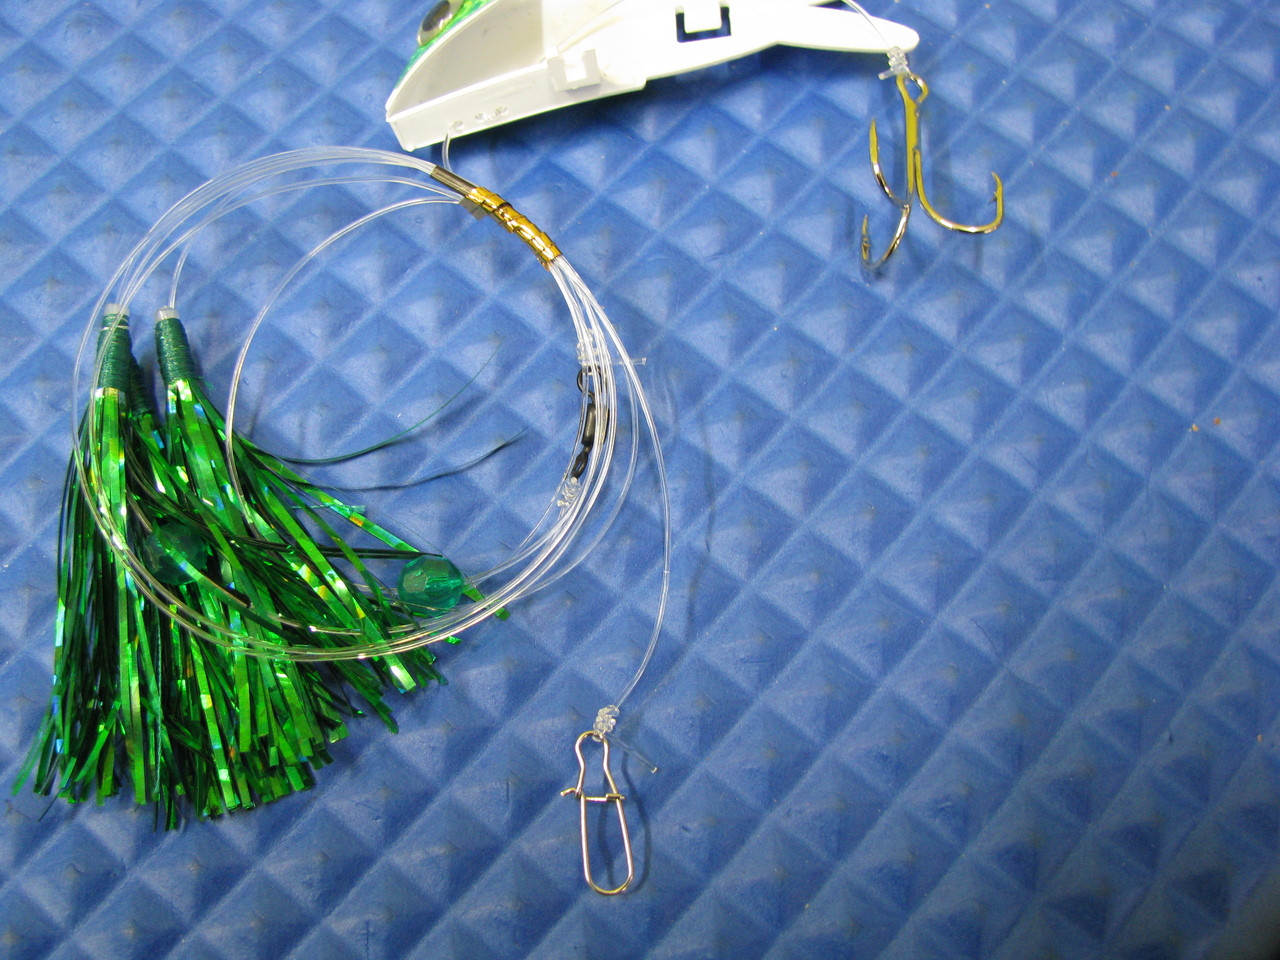 Church Tackle's Shock Wave - Rig NEW ITEM!! Bait Holder Trolling Lures EACH SOLD SEPARATELY!!  CHOOSE YOUR COLOR